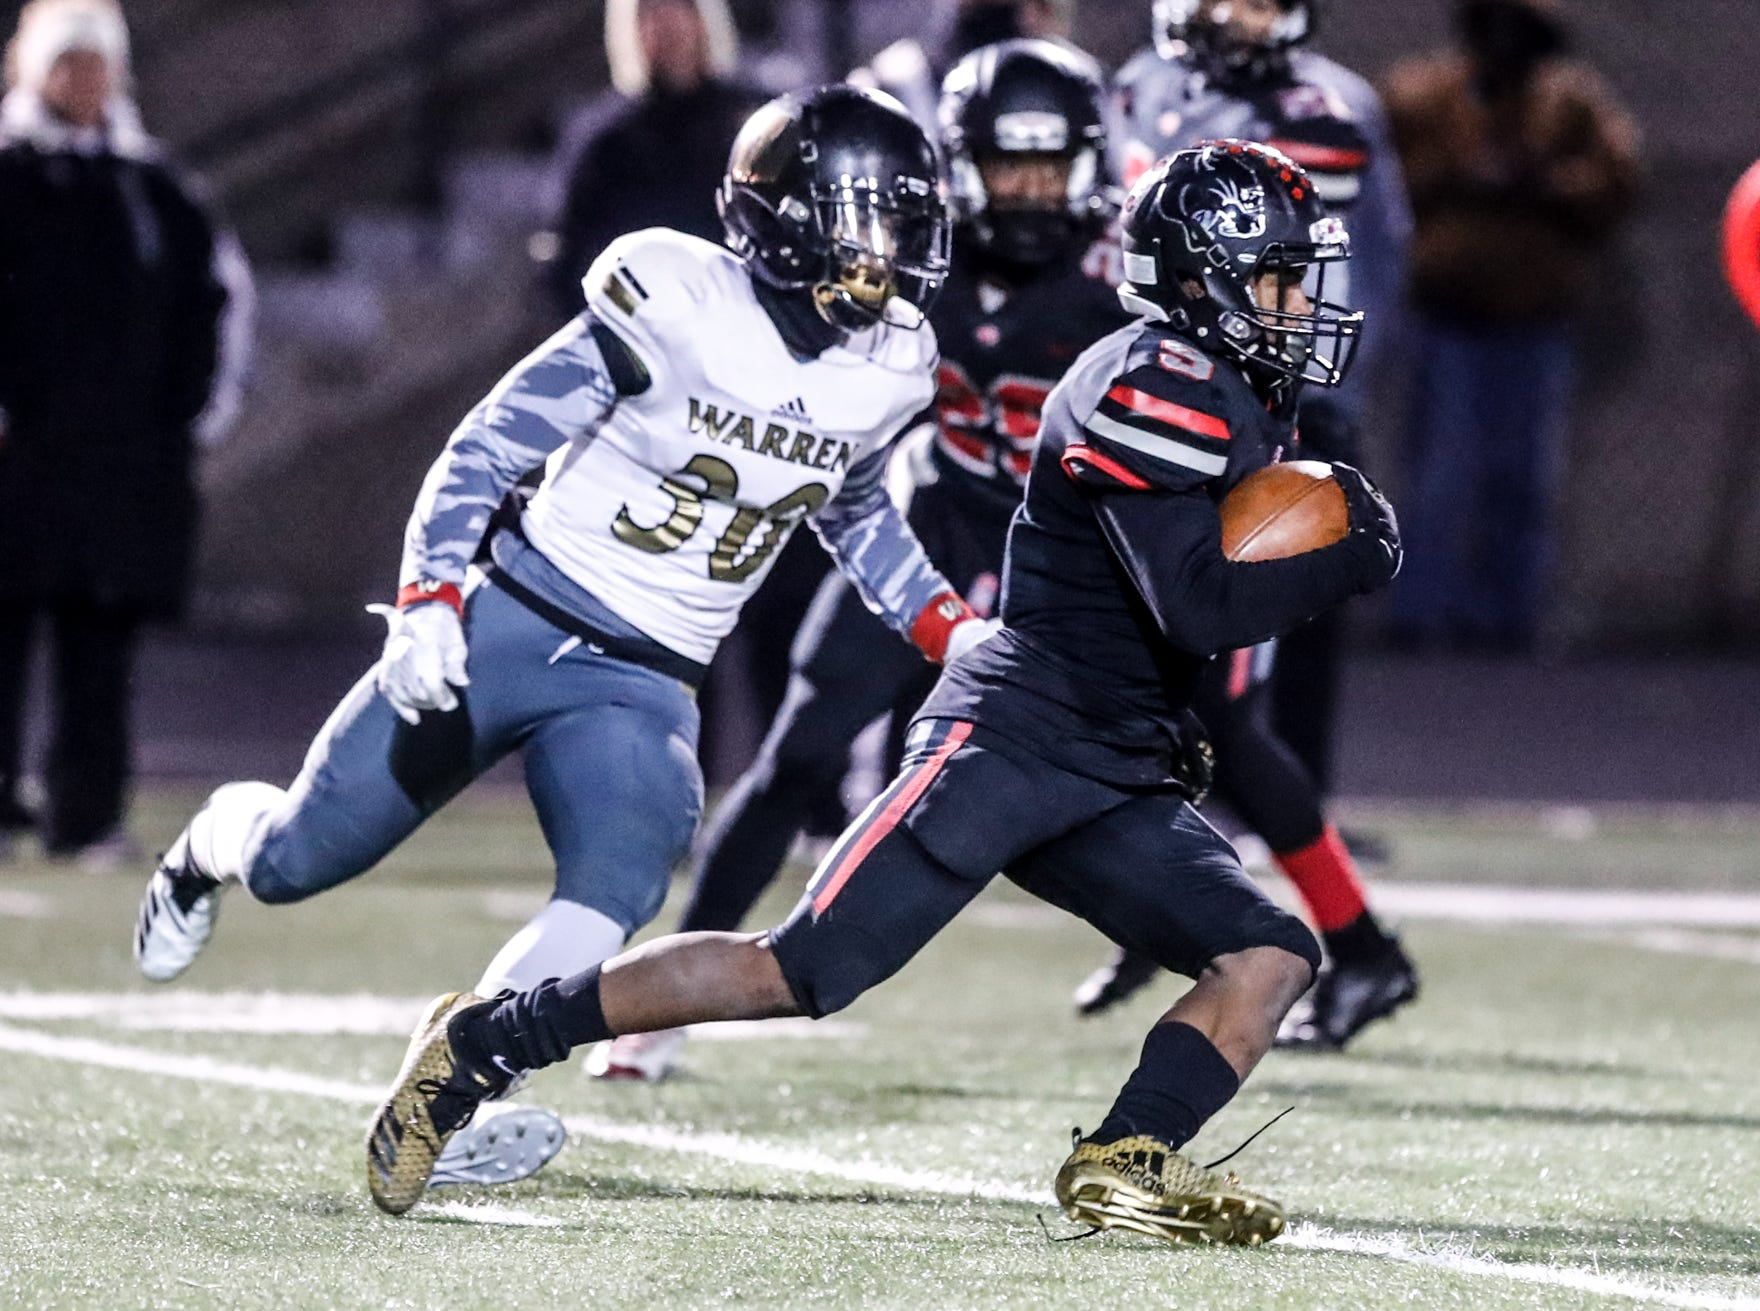 North Central High School Panthers Tre'von Elliott (9), outruns Warren Central High School Warrior's Calum Carruthers (30), for an 85 yard touchdown during a regional finals game at North Central High School on Friday, Nov. 9, 2018.